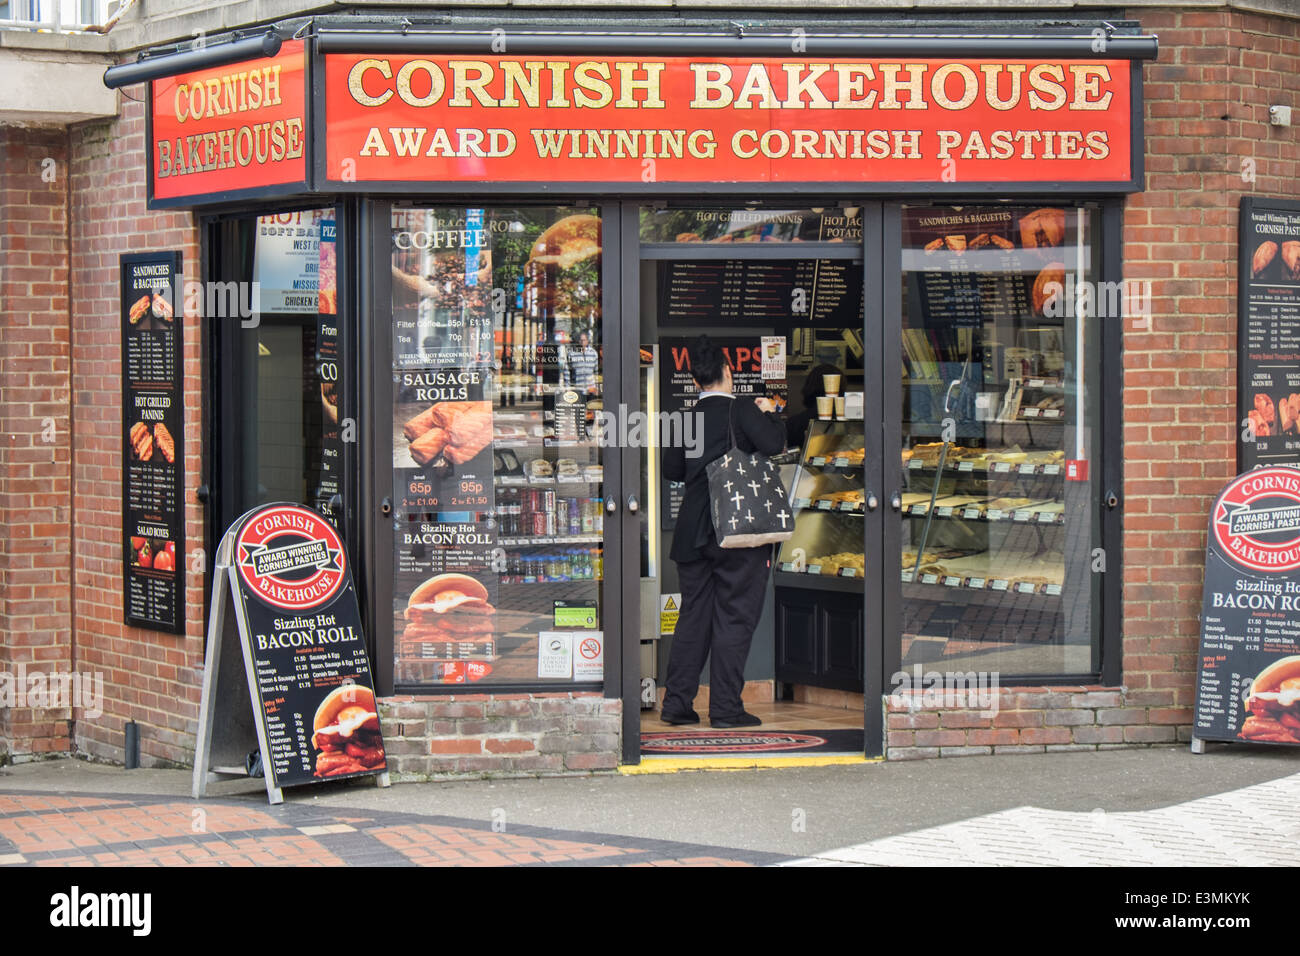 The front of a Cornish Bakehouse retail store & bakery in Swindon, Wiltshire,UK with a customer being served - Stock Image